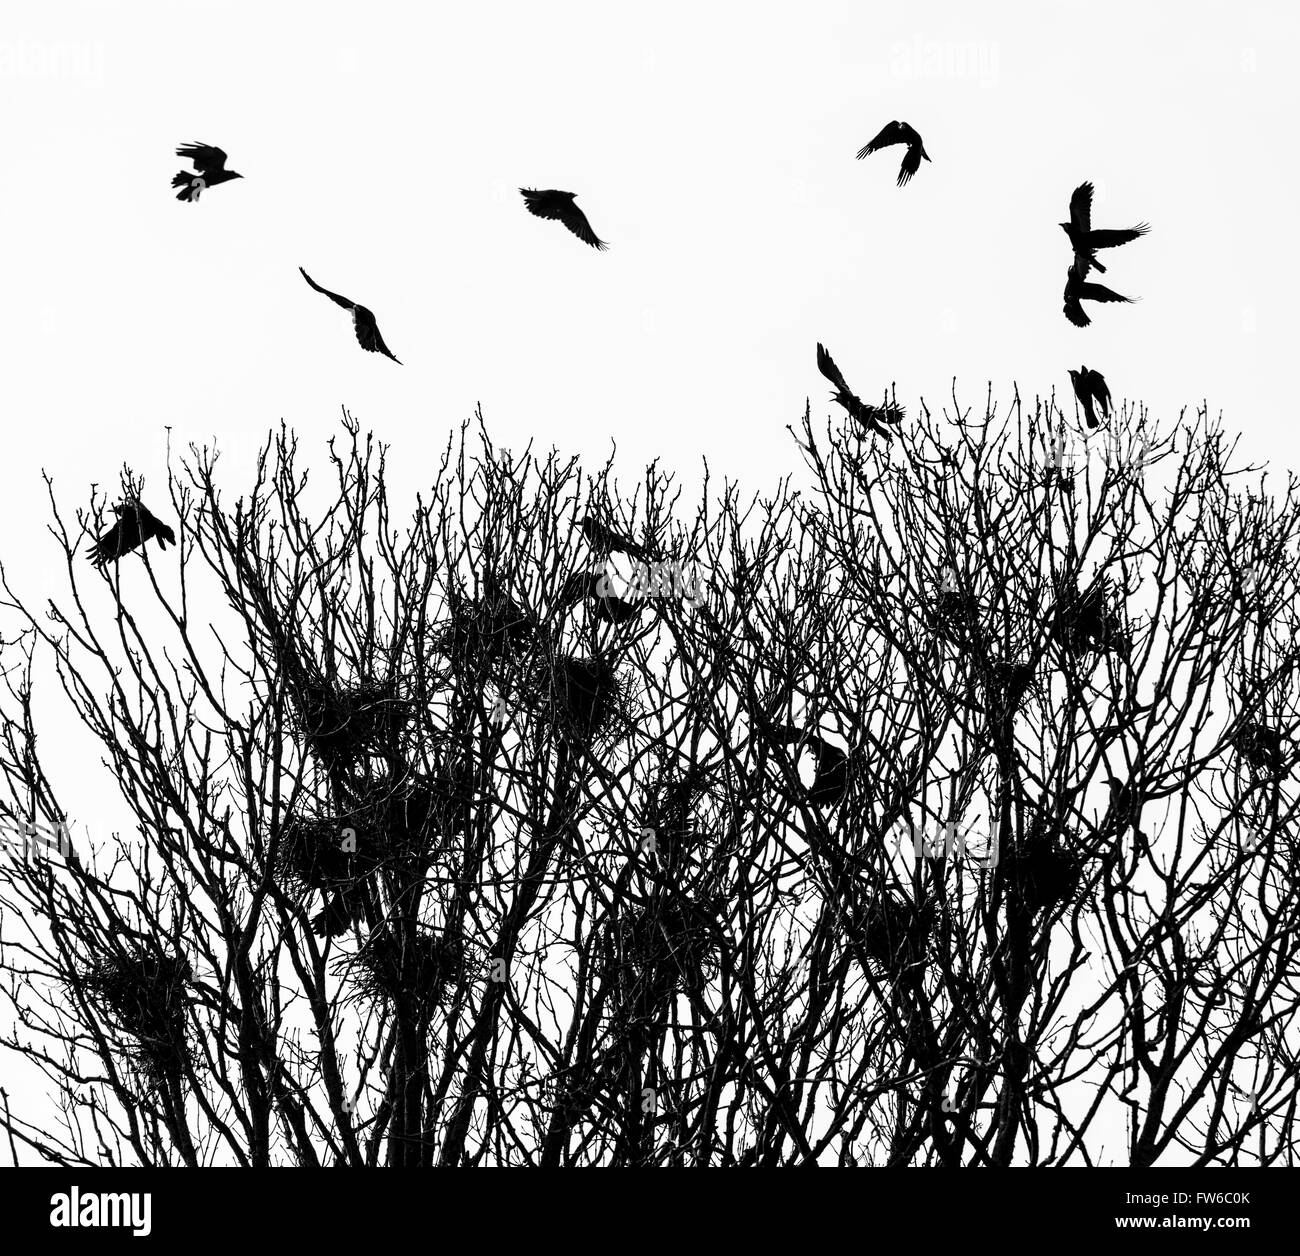 Rooks busy tending their nests. - Stock Image